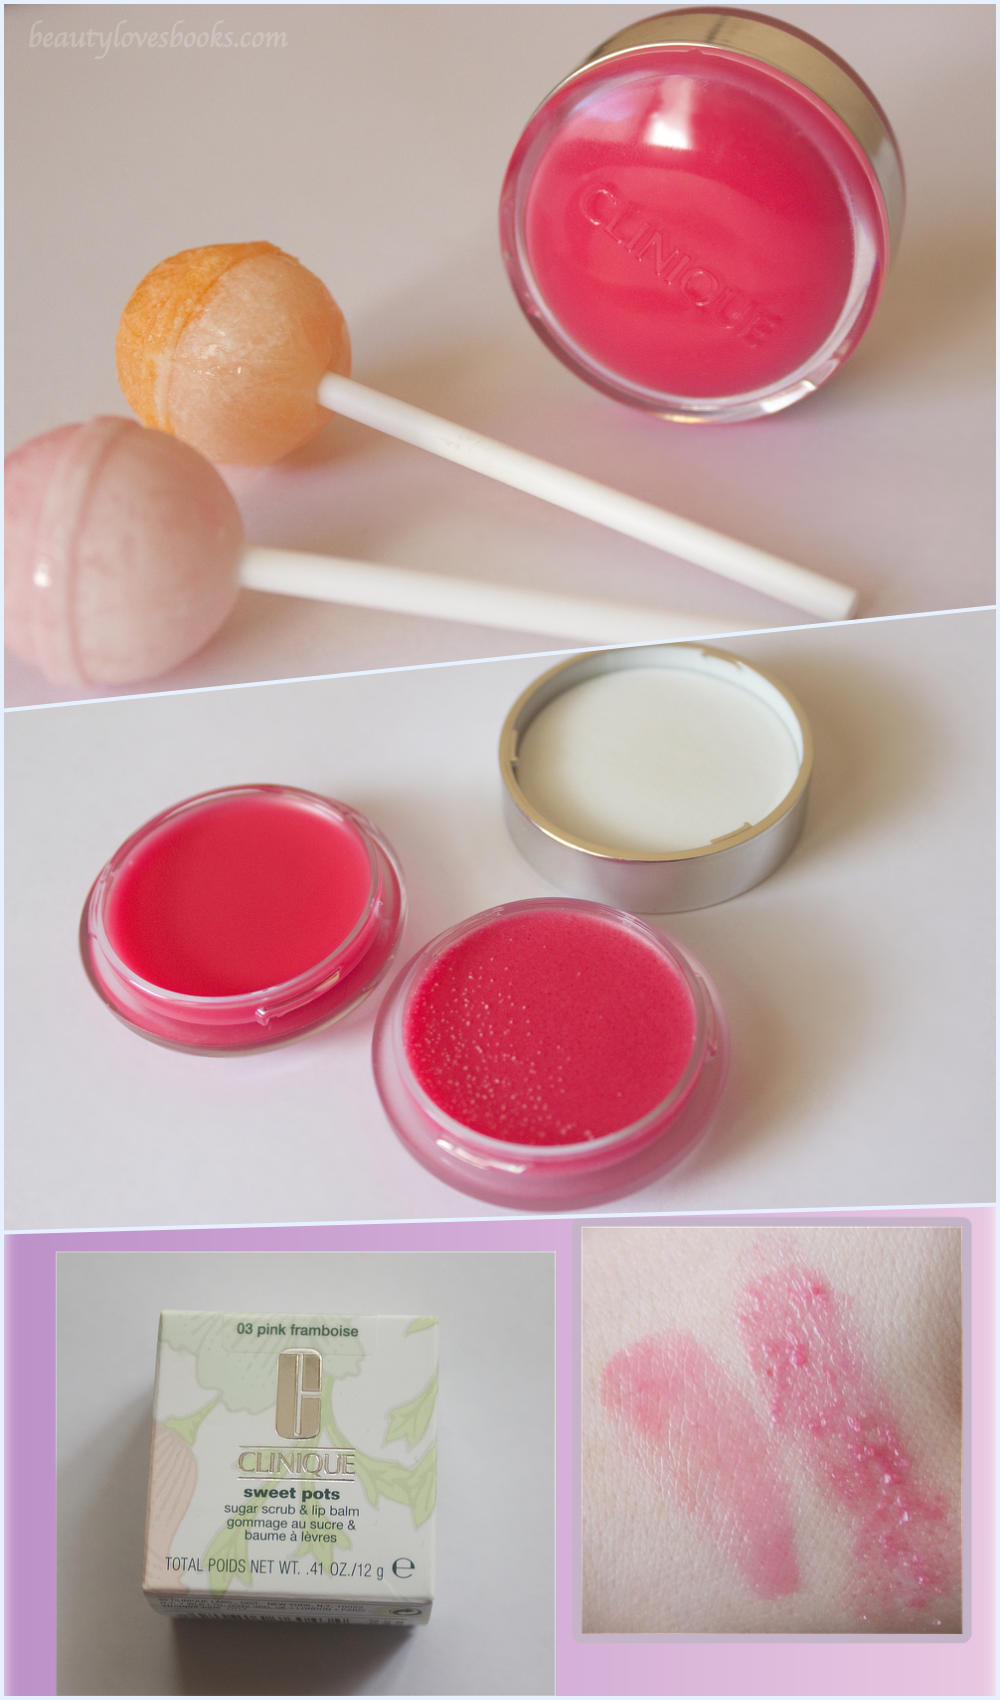 Clinique Sweet pots sugar scrub & lip balm в 03 pink framboise swatches